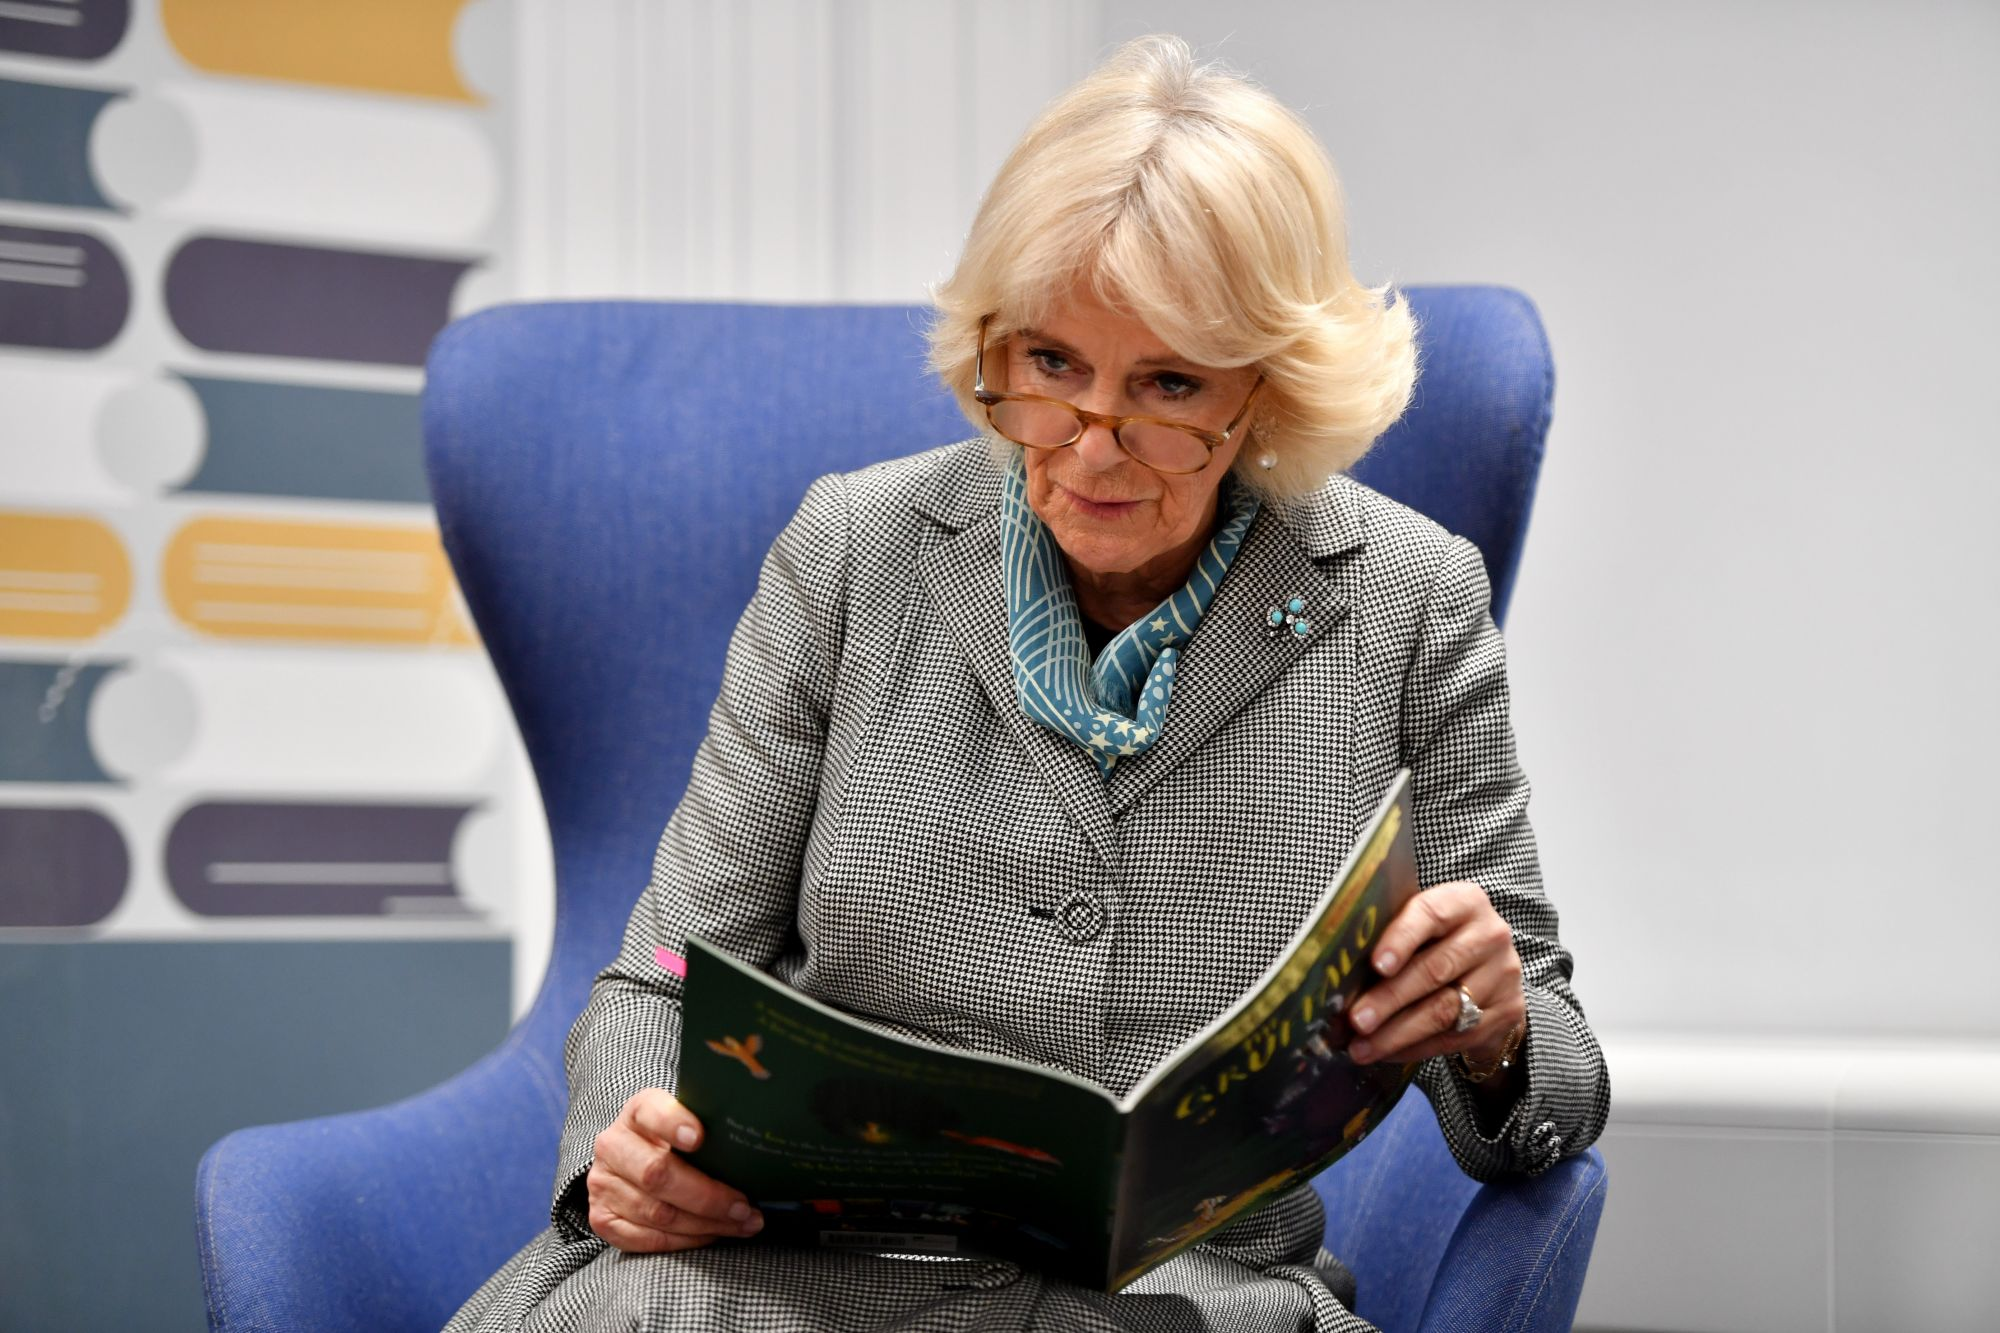 """WALSALL, ENGLAND - JANUARY 22: Camilla, Duchess of Cornwall reads """"The Gruffalo"""" by Julia Donaldson to a Tiny Tots group during the official opening of Lichfield Street Hub on January 22, 2020 in Walsall, England. (Photo by Anthony Devlin -WPA Pool/Getty Images)"""